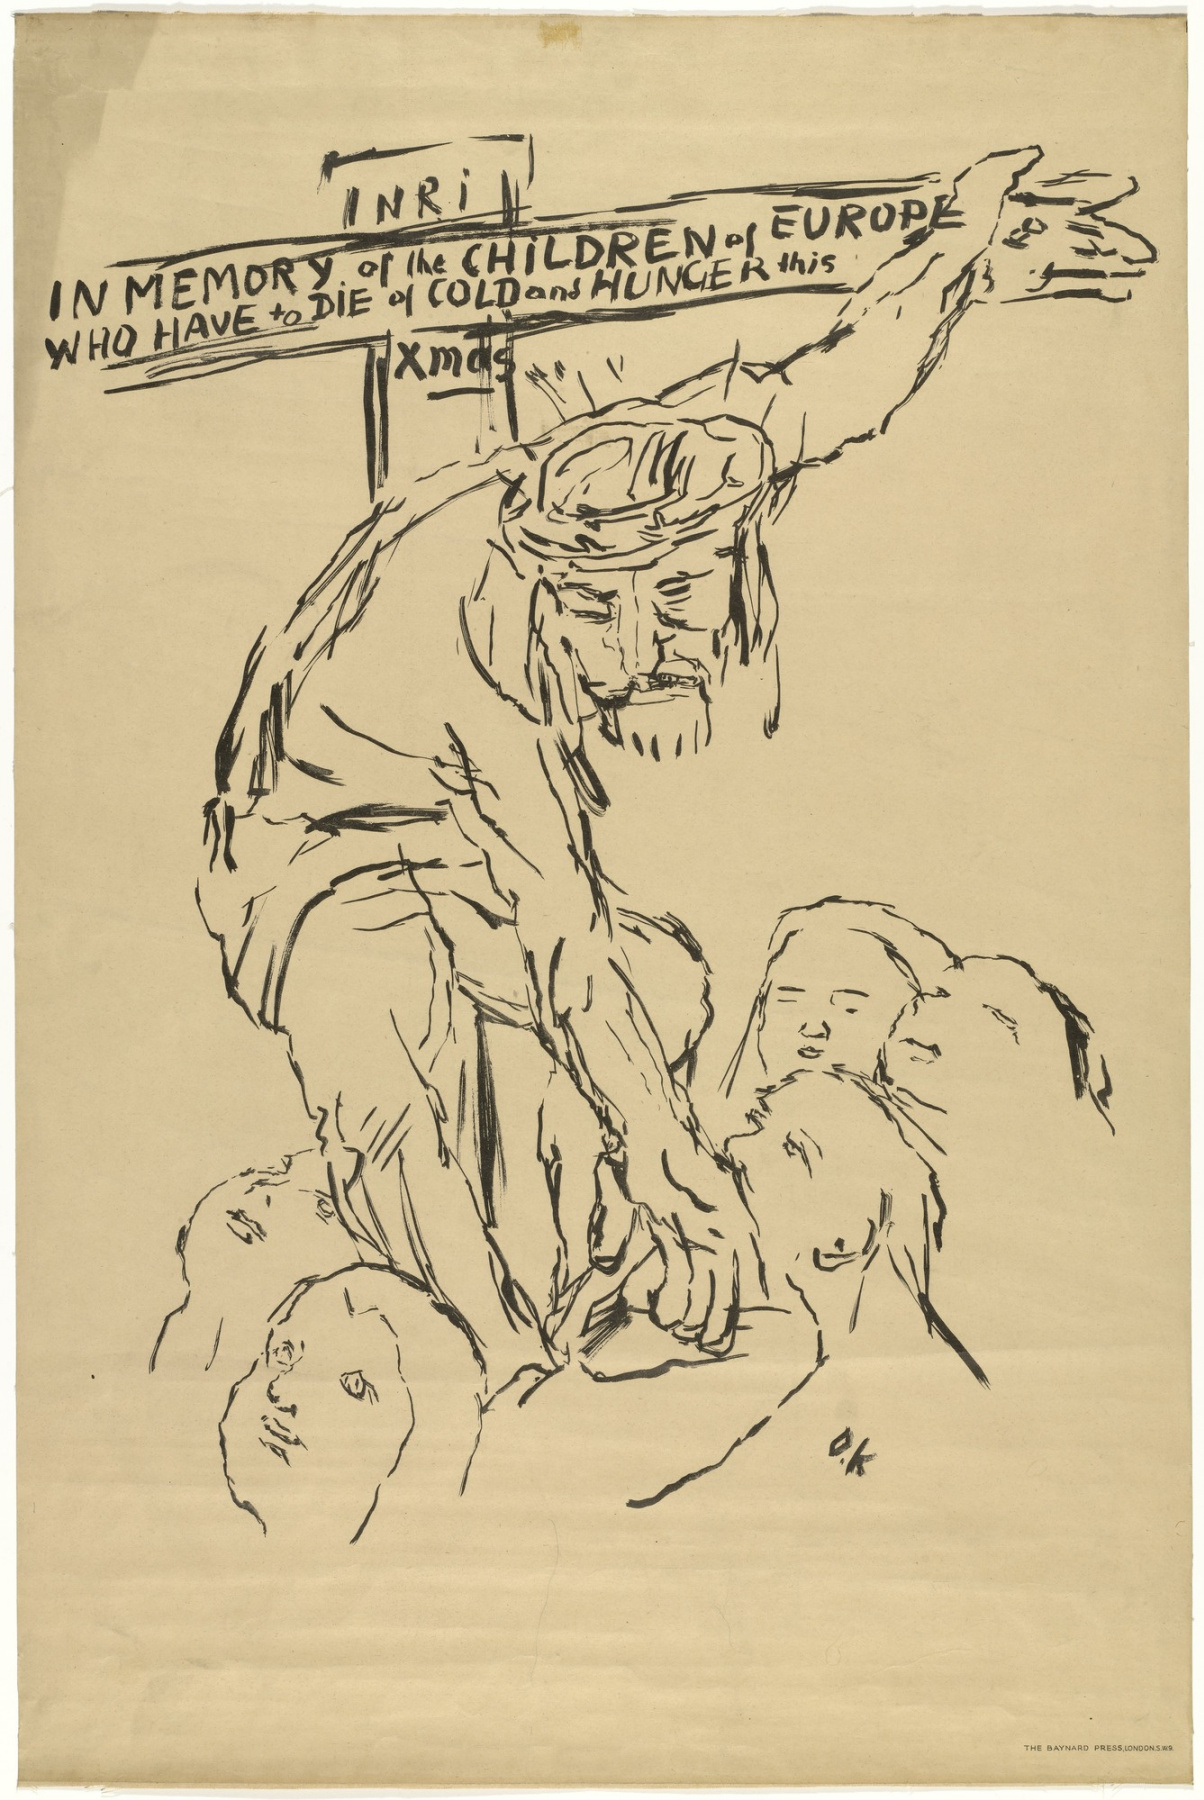 Oskar Kokoschka. Christ helps the starving children